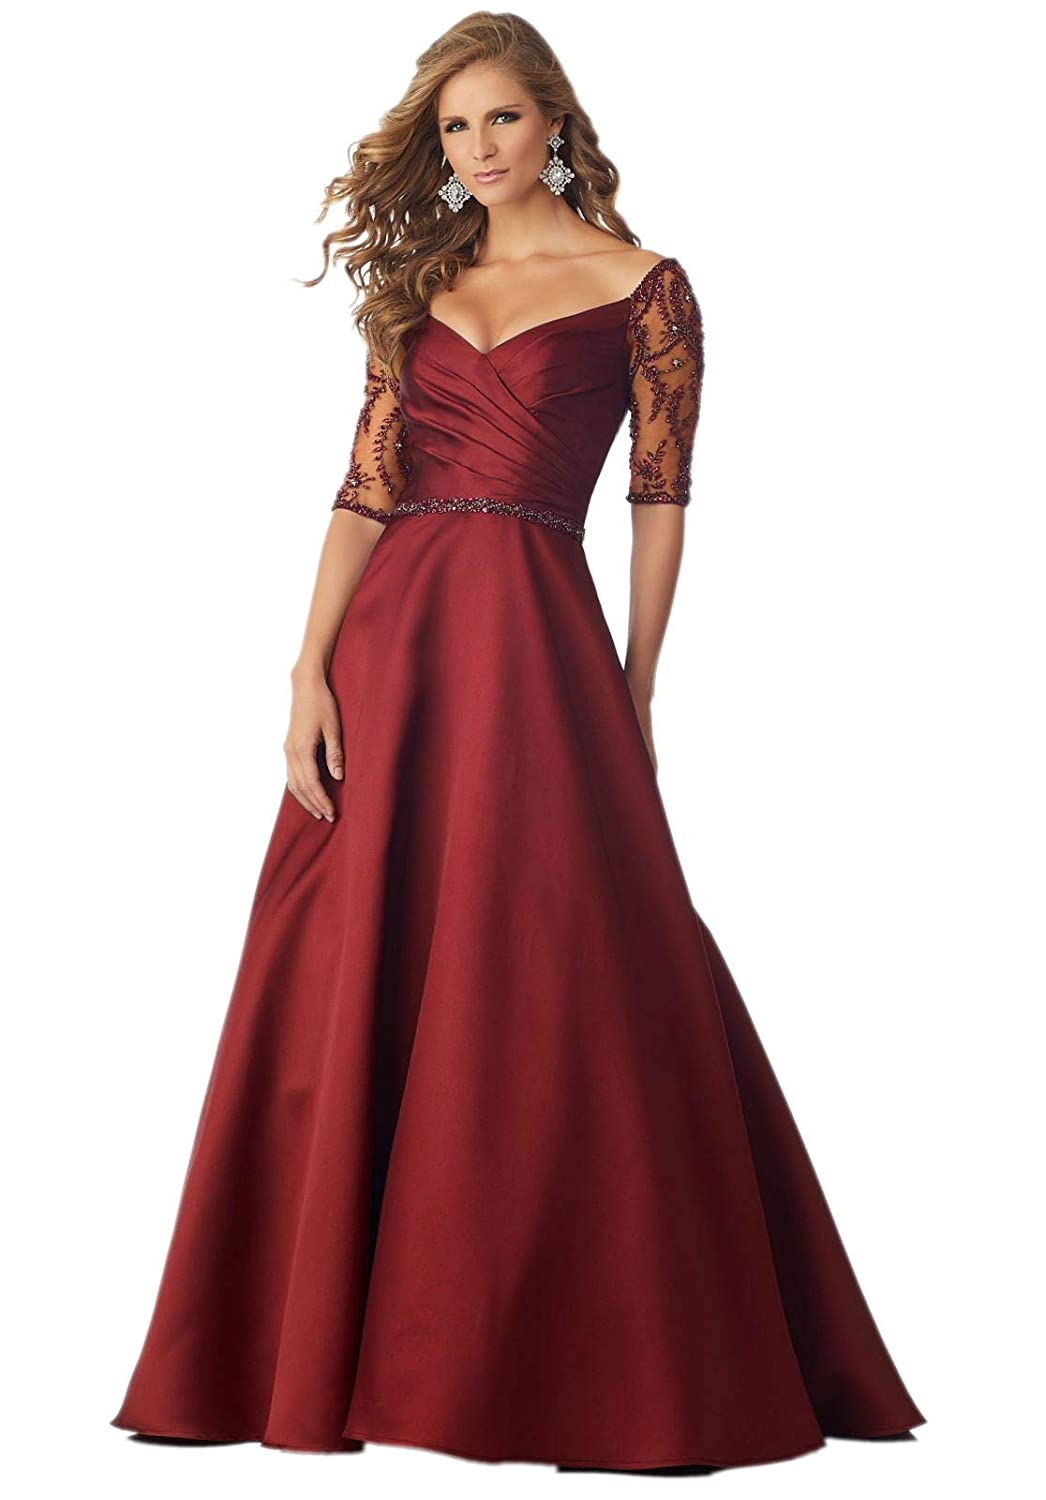 Burgundy Jerald Norton Ltd Women's Off The Shoulder Beaded Satin Evening Prom Dress V Back Party Gowns Burgundy